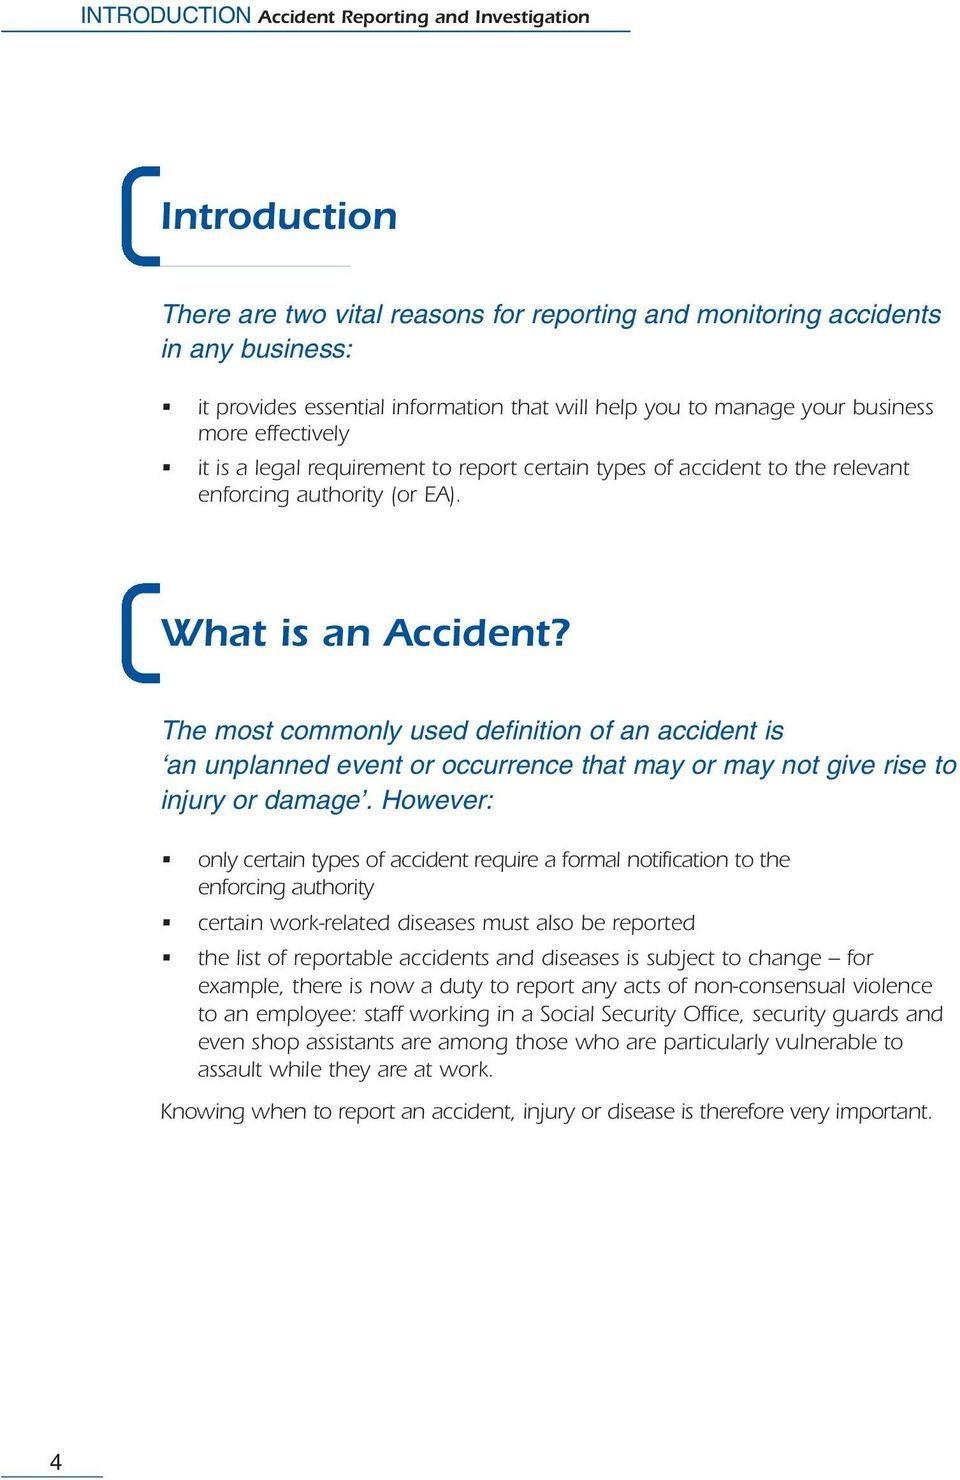 The most commonly used definition of an accident is an unplanned event or occurrence that may or may not give rise to injury or damage.